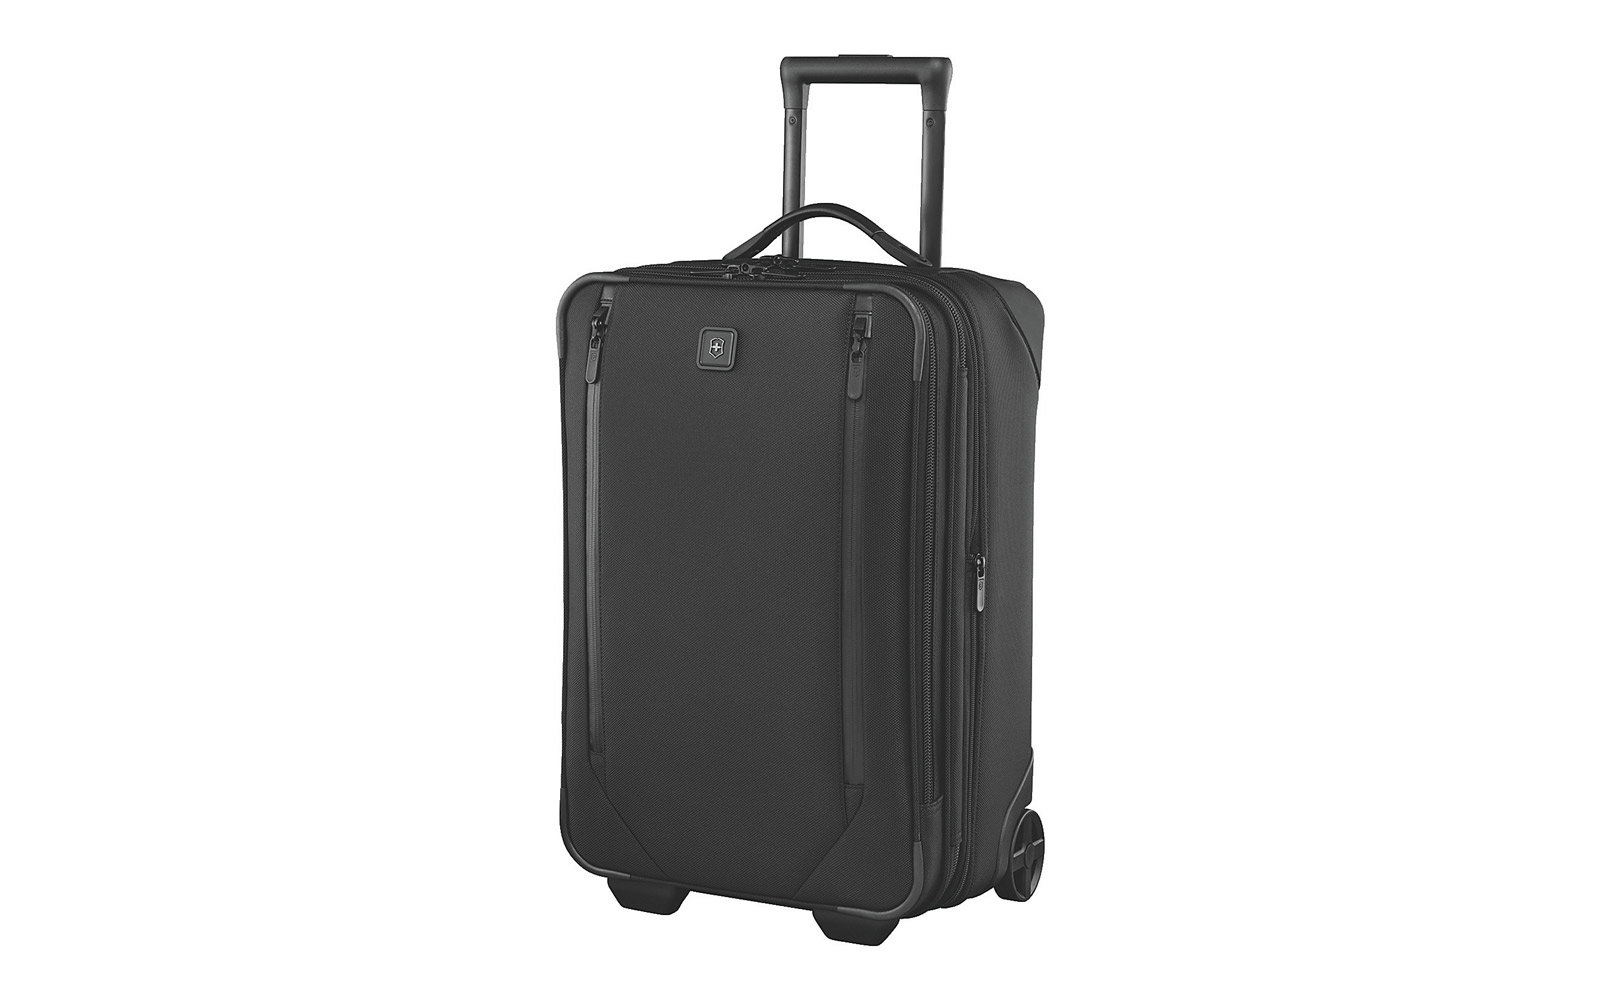 Best Two-wheel Rollaboard Carry-on: Victorinox Lexicon 2.0 Global Carry-on